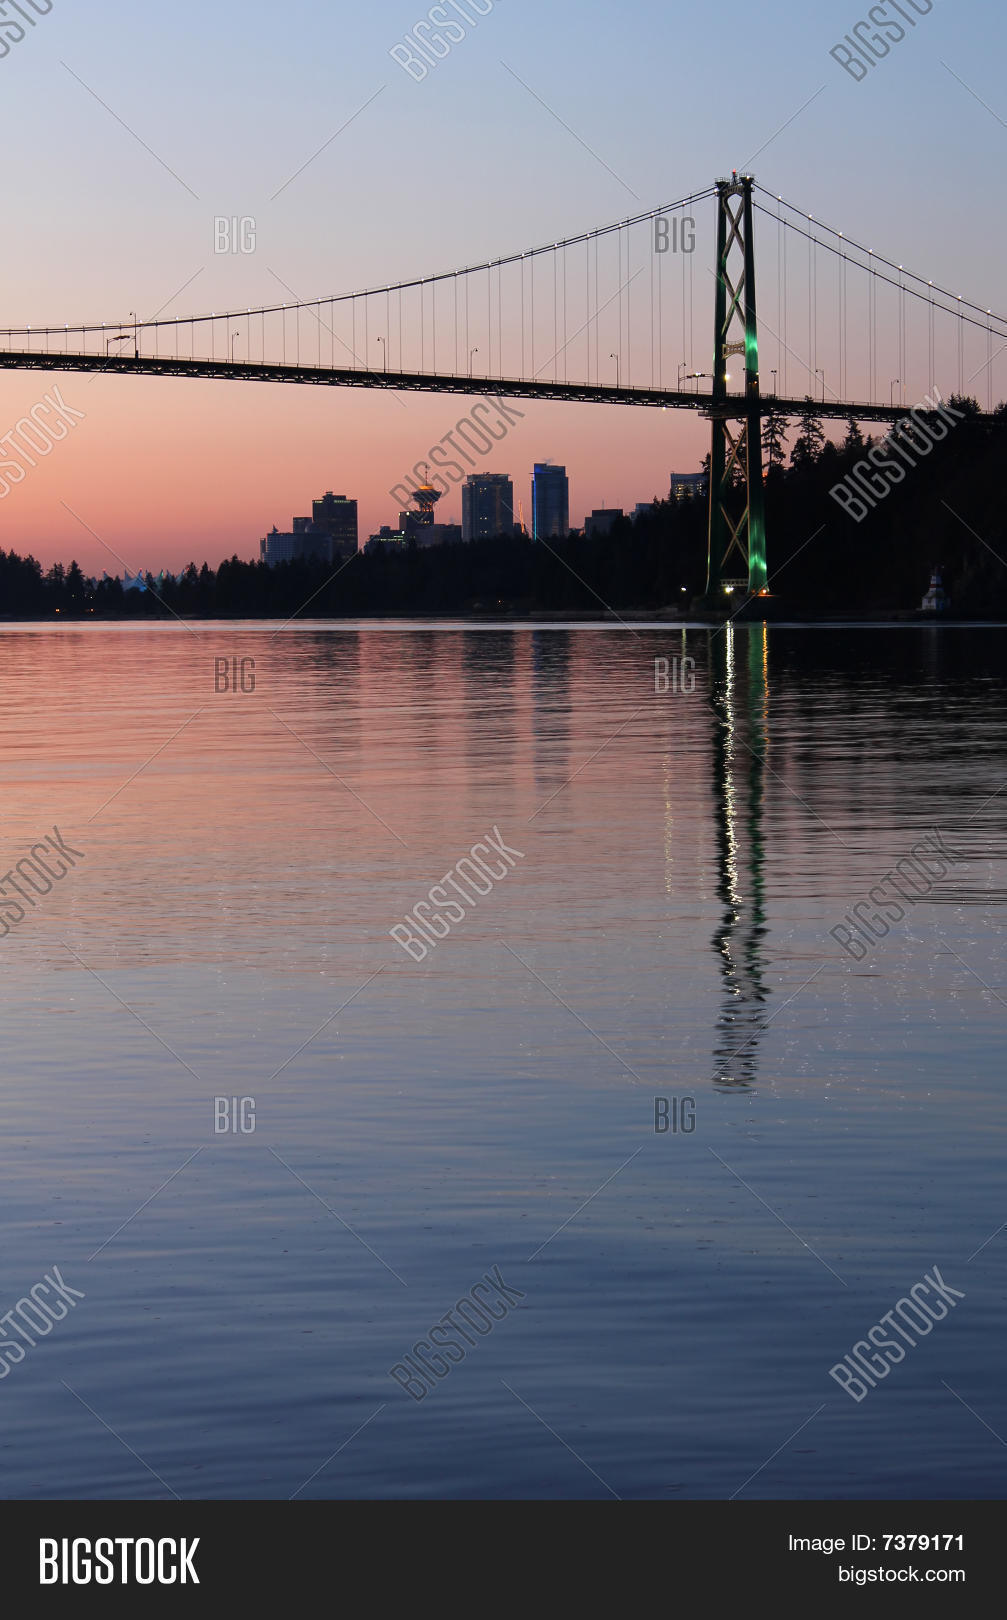 architecture,blue,bridge,british,burrard,calm,canada,city,cityscape,columbia,dawn,gate,inlet,lion's,morning,panorama,park,reflection,scenic,skyline,span,stanley,sunrise,suspension,tower,tranquil,transportation,travel,twilight,urban,vancouver,water